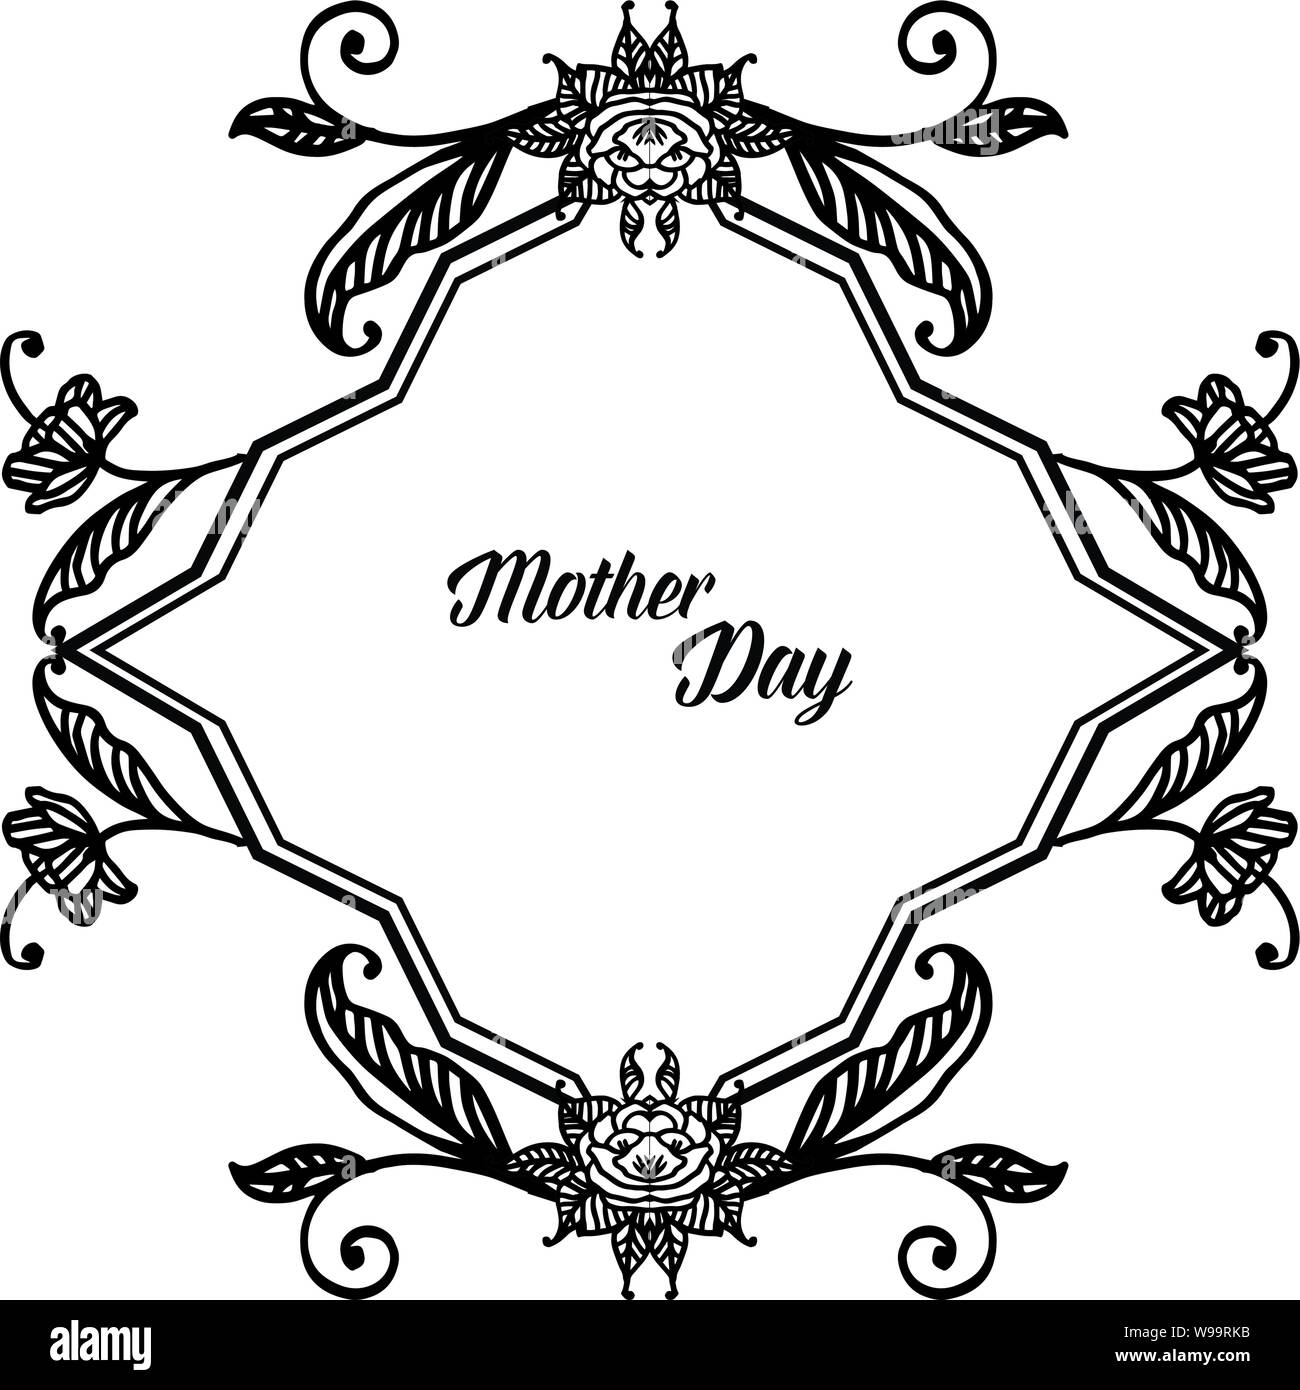 Design Celebration Card Mother Day With Wallpaper Of Cute Flower Frame Vector Illustration Stock Vector Image Art Alamy